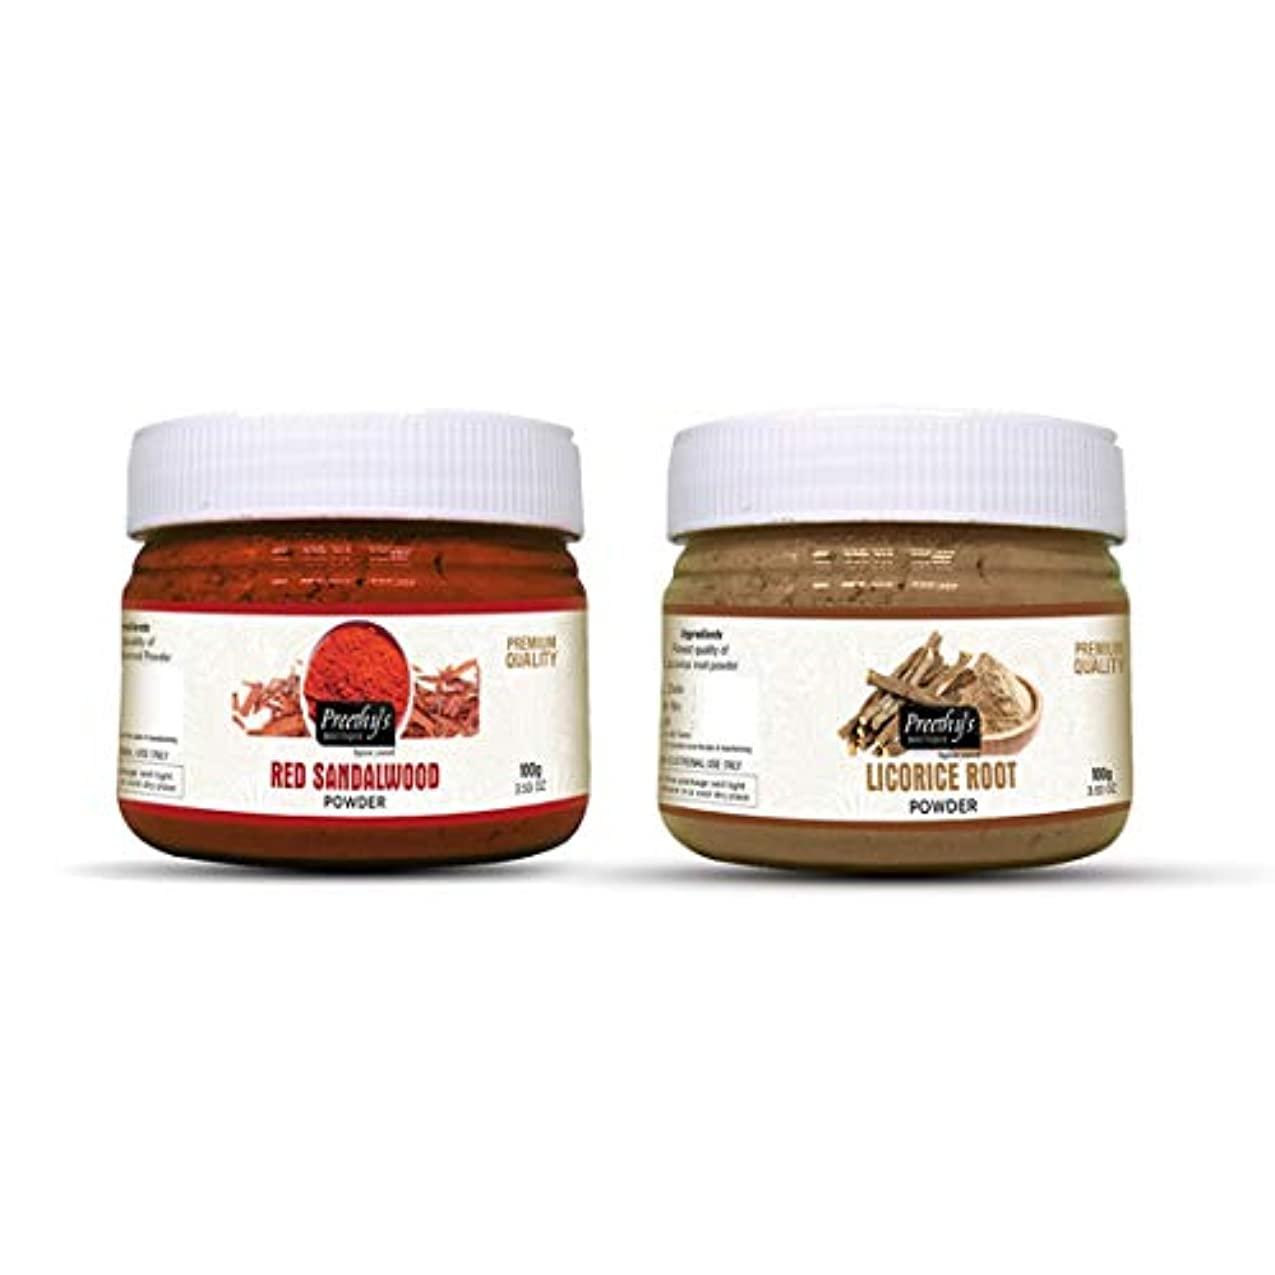 ベンチャー広告おとなしいCombo offer Of Licorice root powder 100gm & Red sandalwood powder 100gm - Natural Remedies for Skin Disorders,...